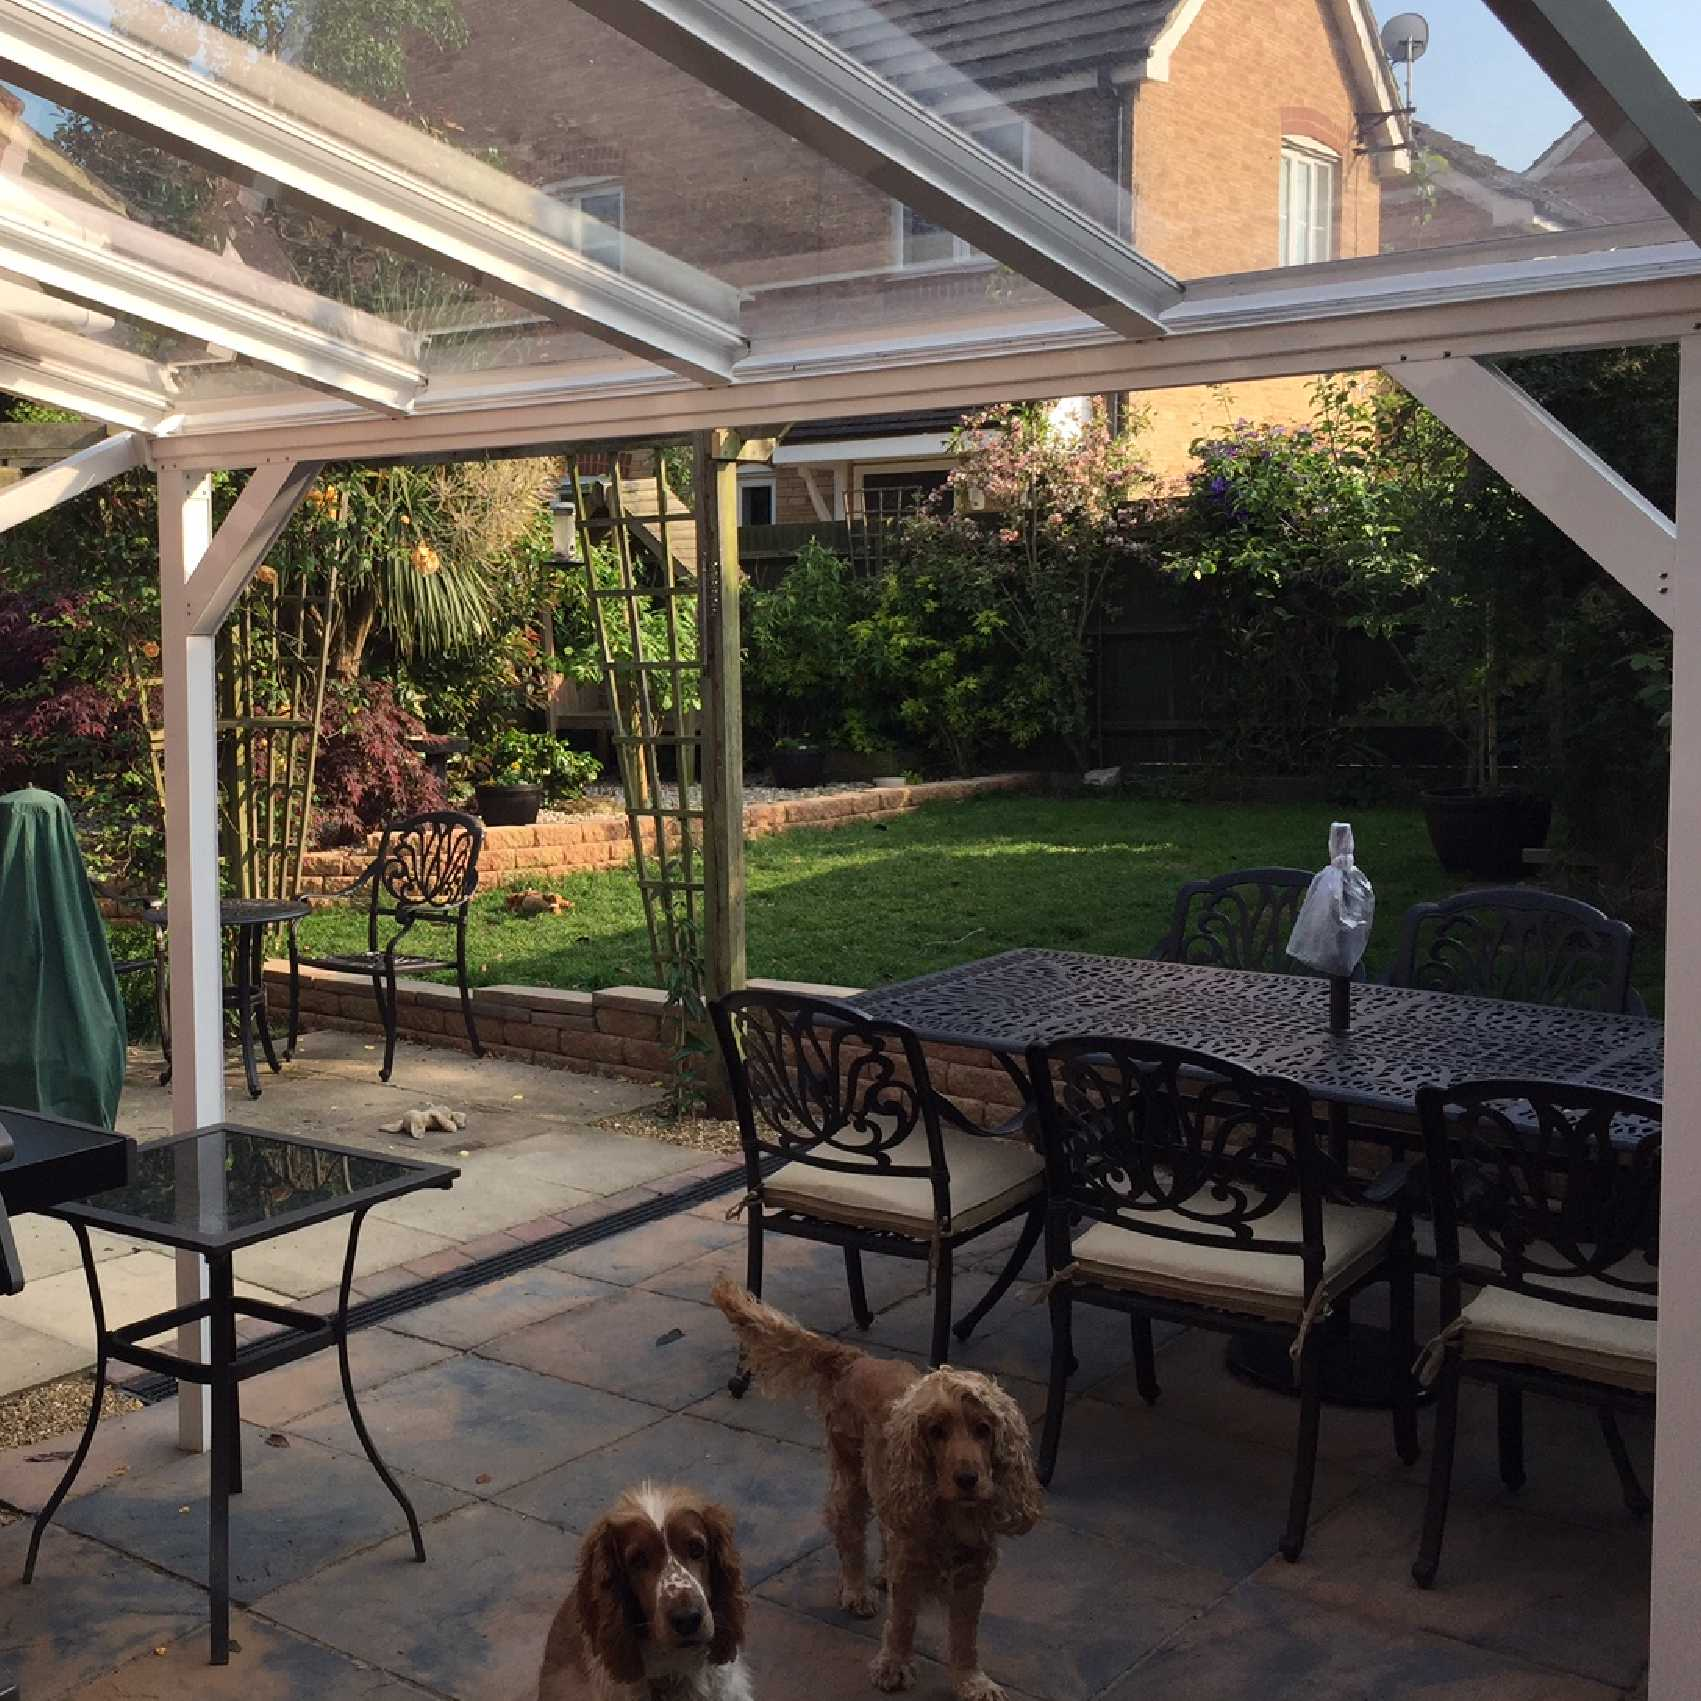 Affordable Omega Smart White Lean-To Canopy with 6mm Glass Clear Plate Polycarbonate Glazing - 6.3m (W) x 3.0m (P), (4) Supporting Posts